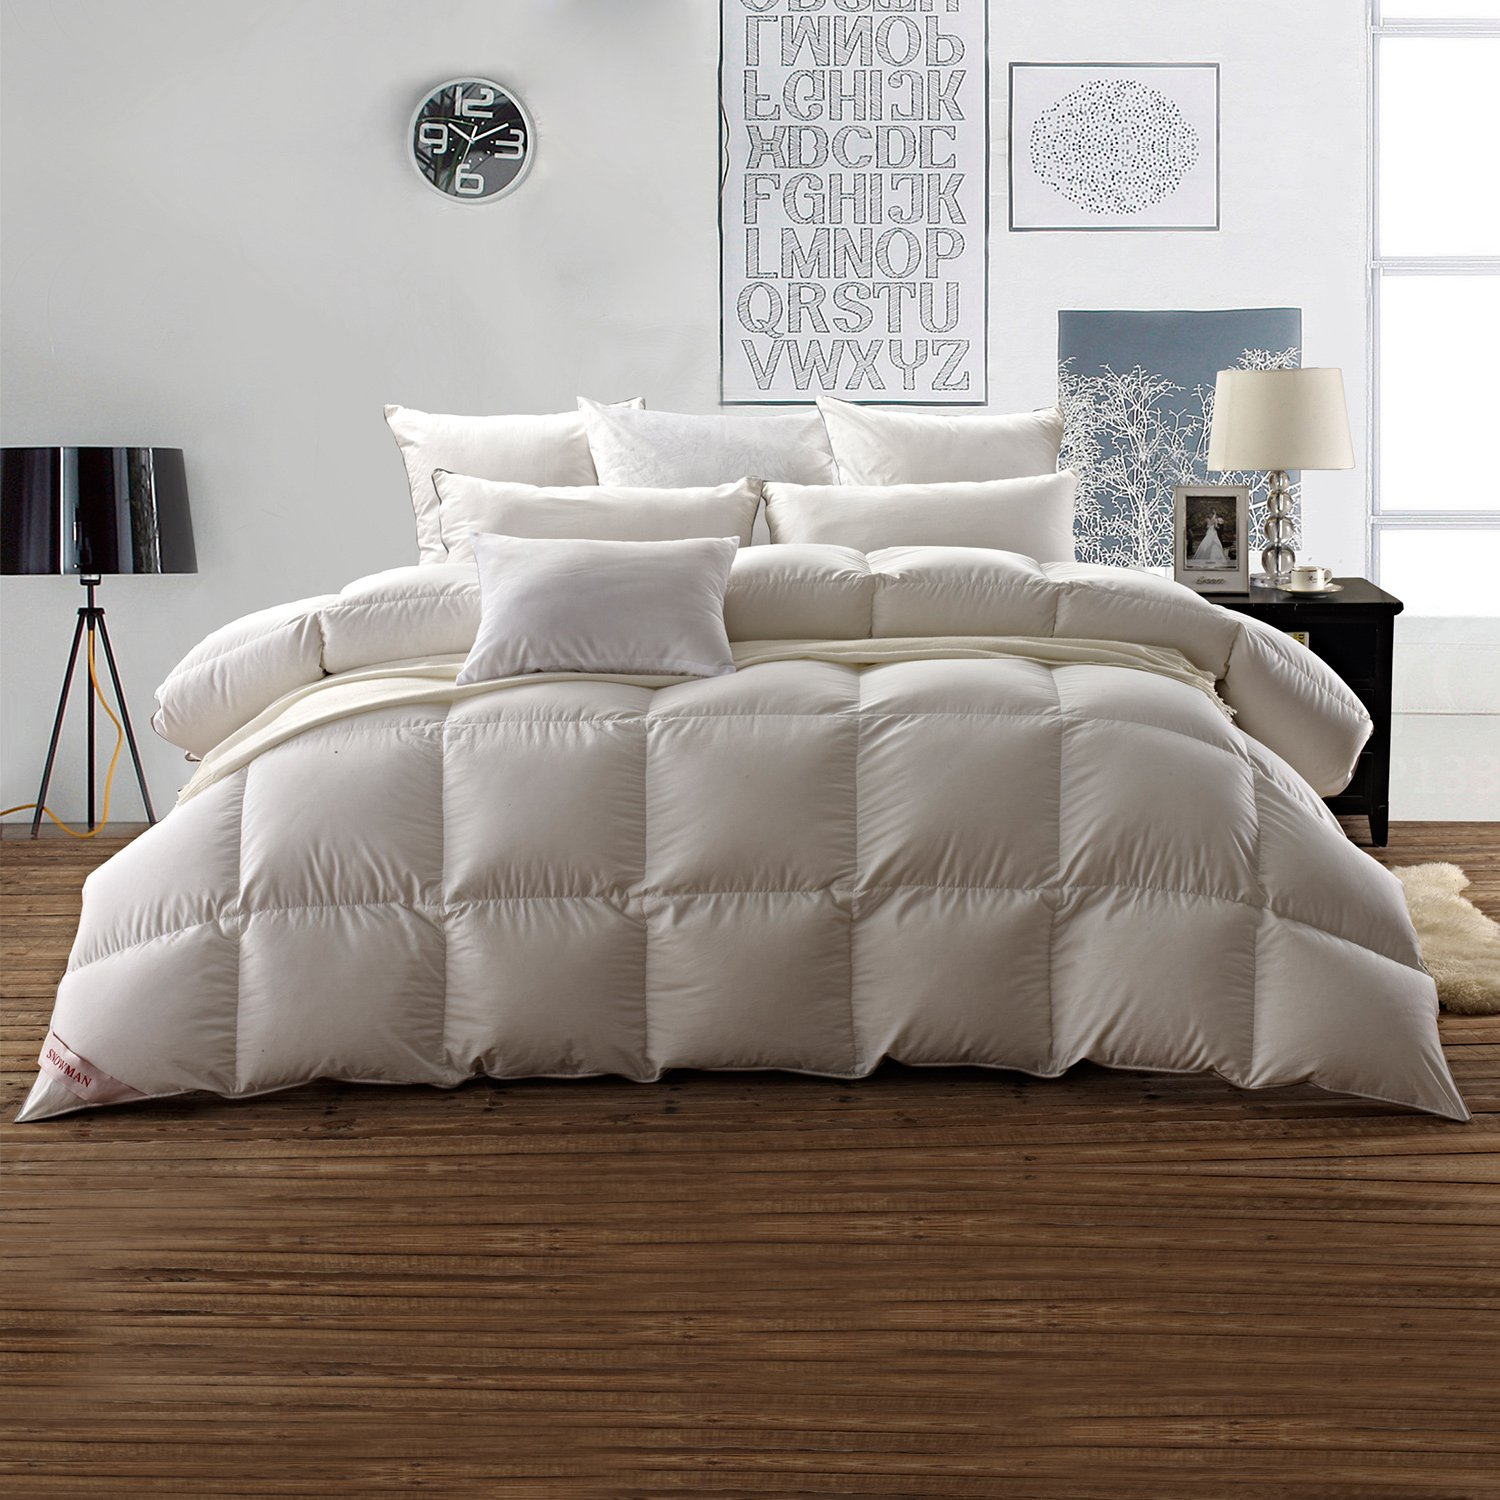 SNOWMAN White Goose Down Comforter Full/Queen Size